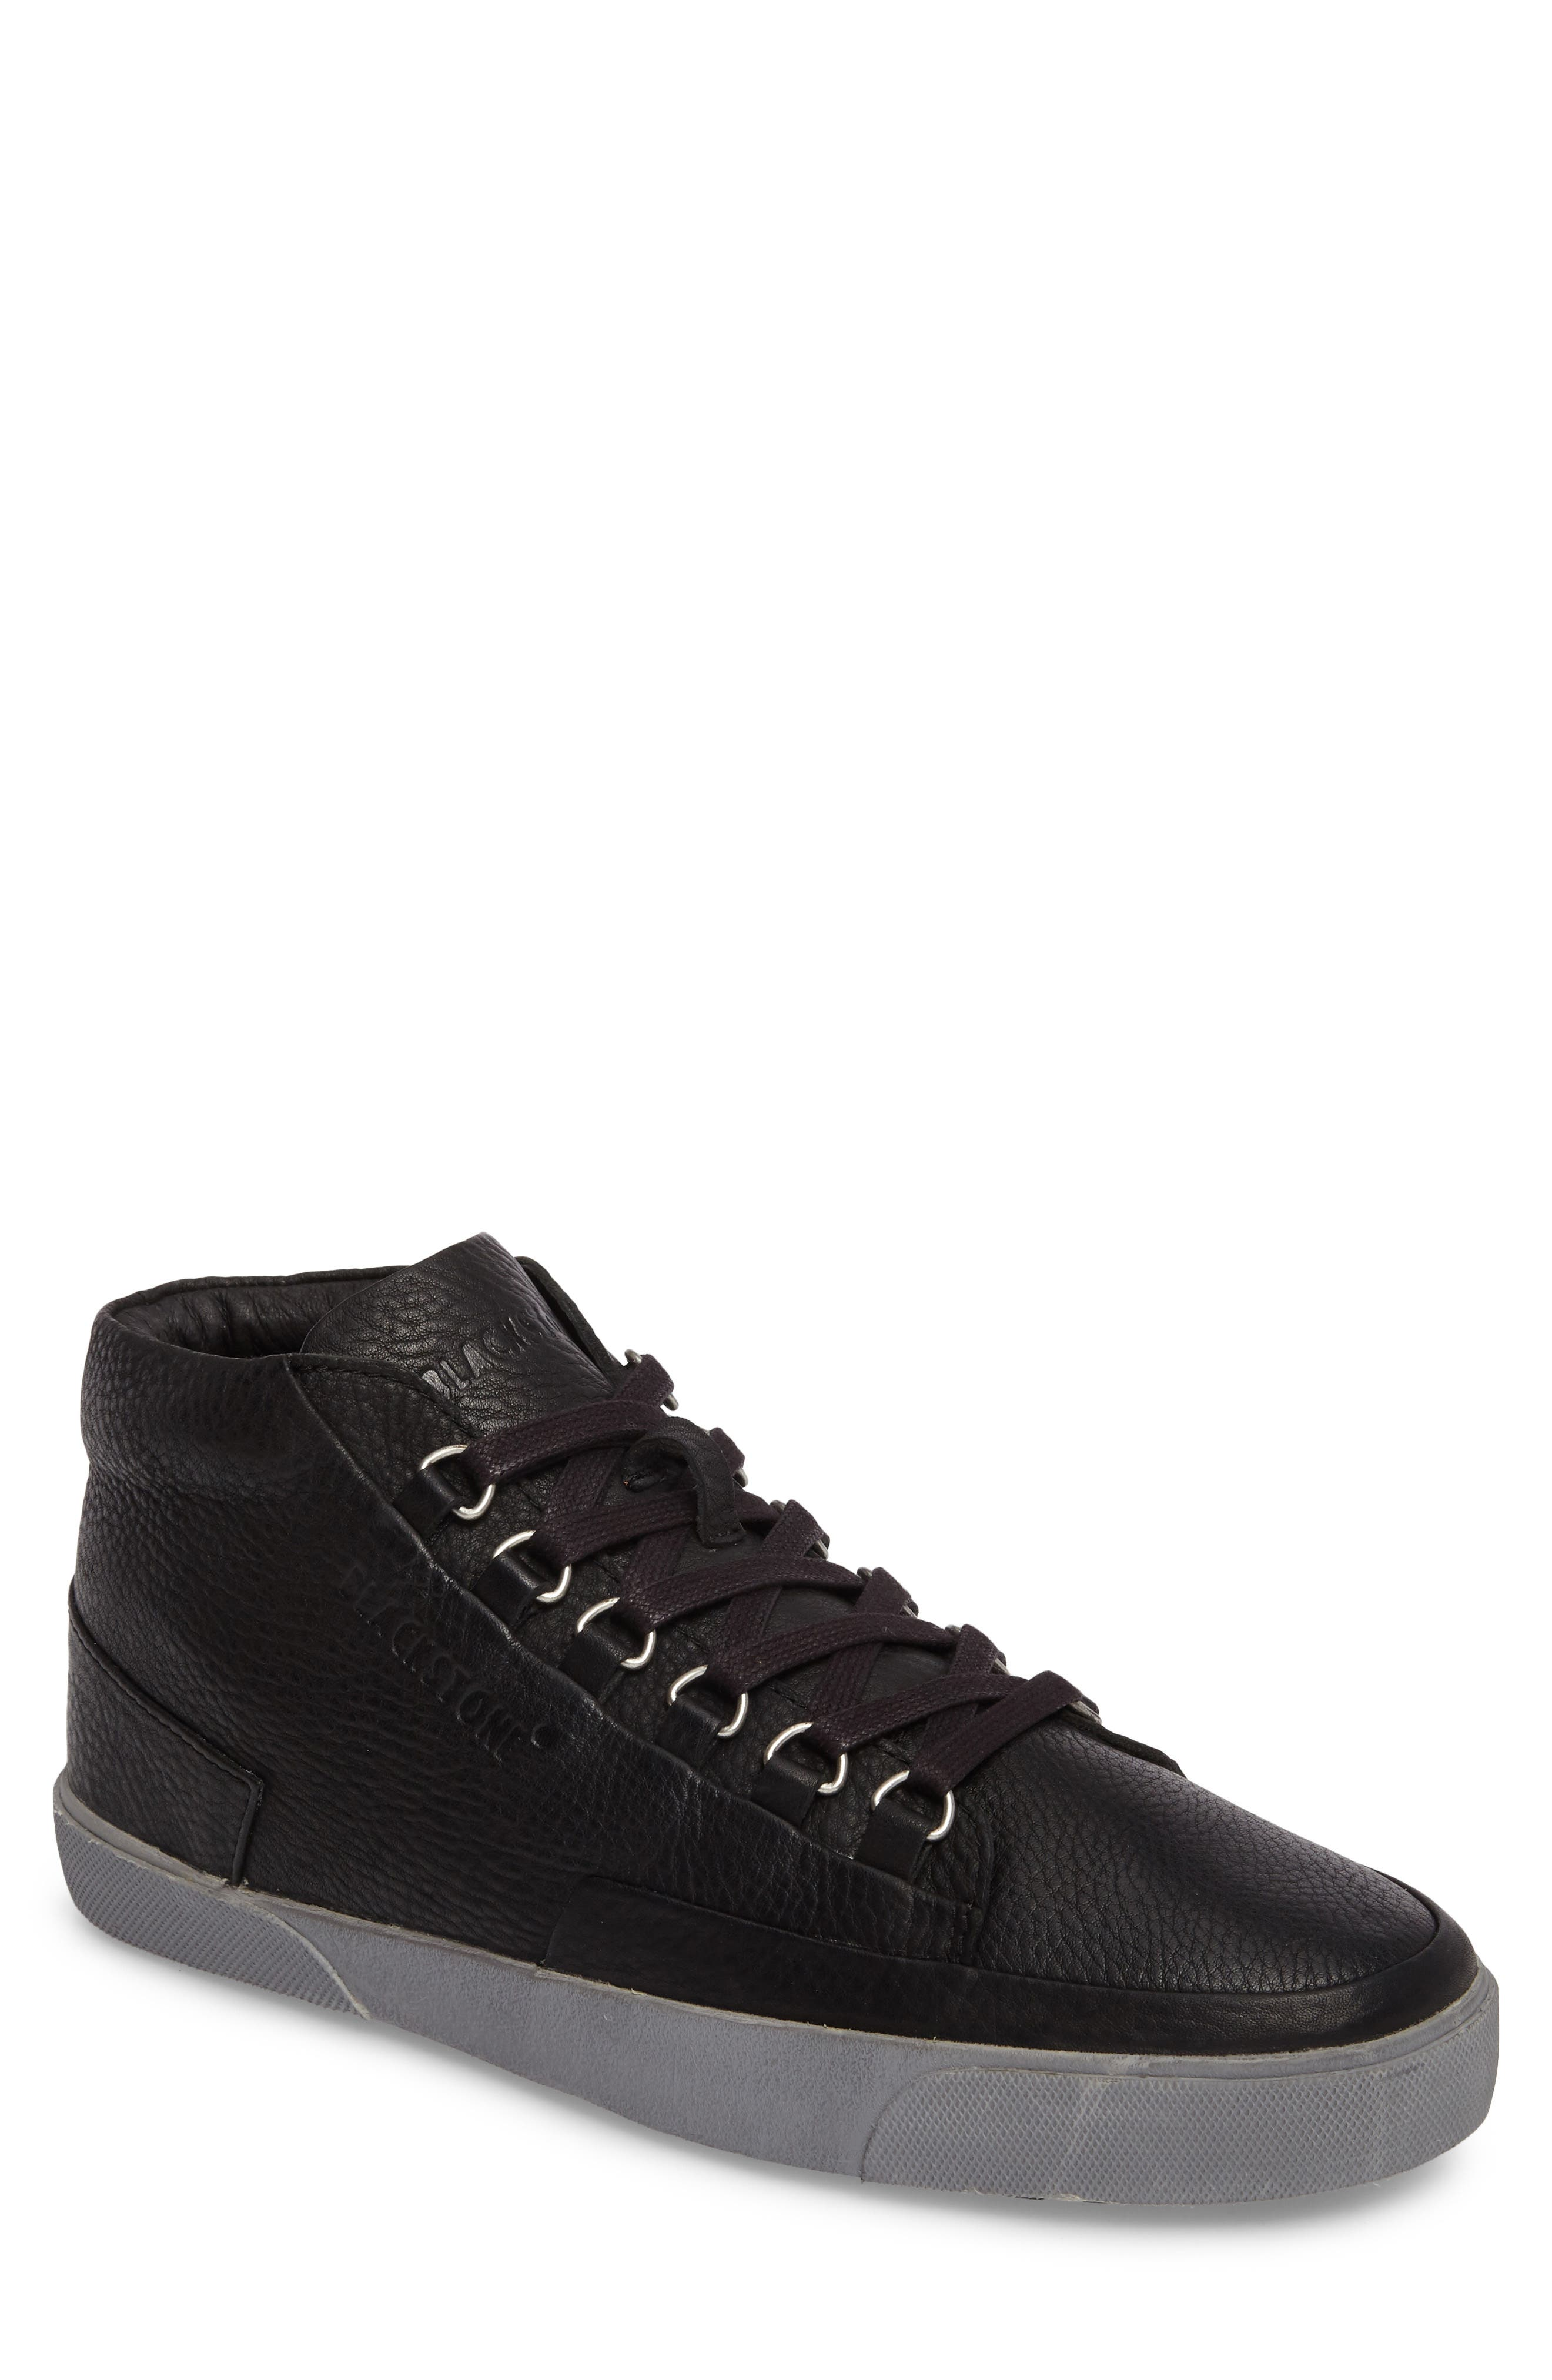 KM 02 Sneaker with Genuine Shearling Lining,                         Main,                         color, Black Leather